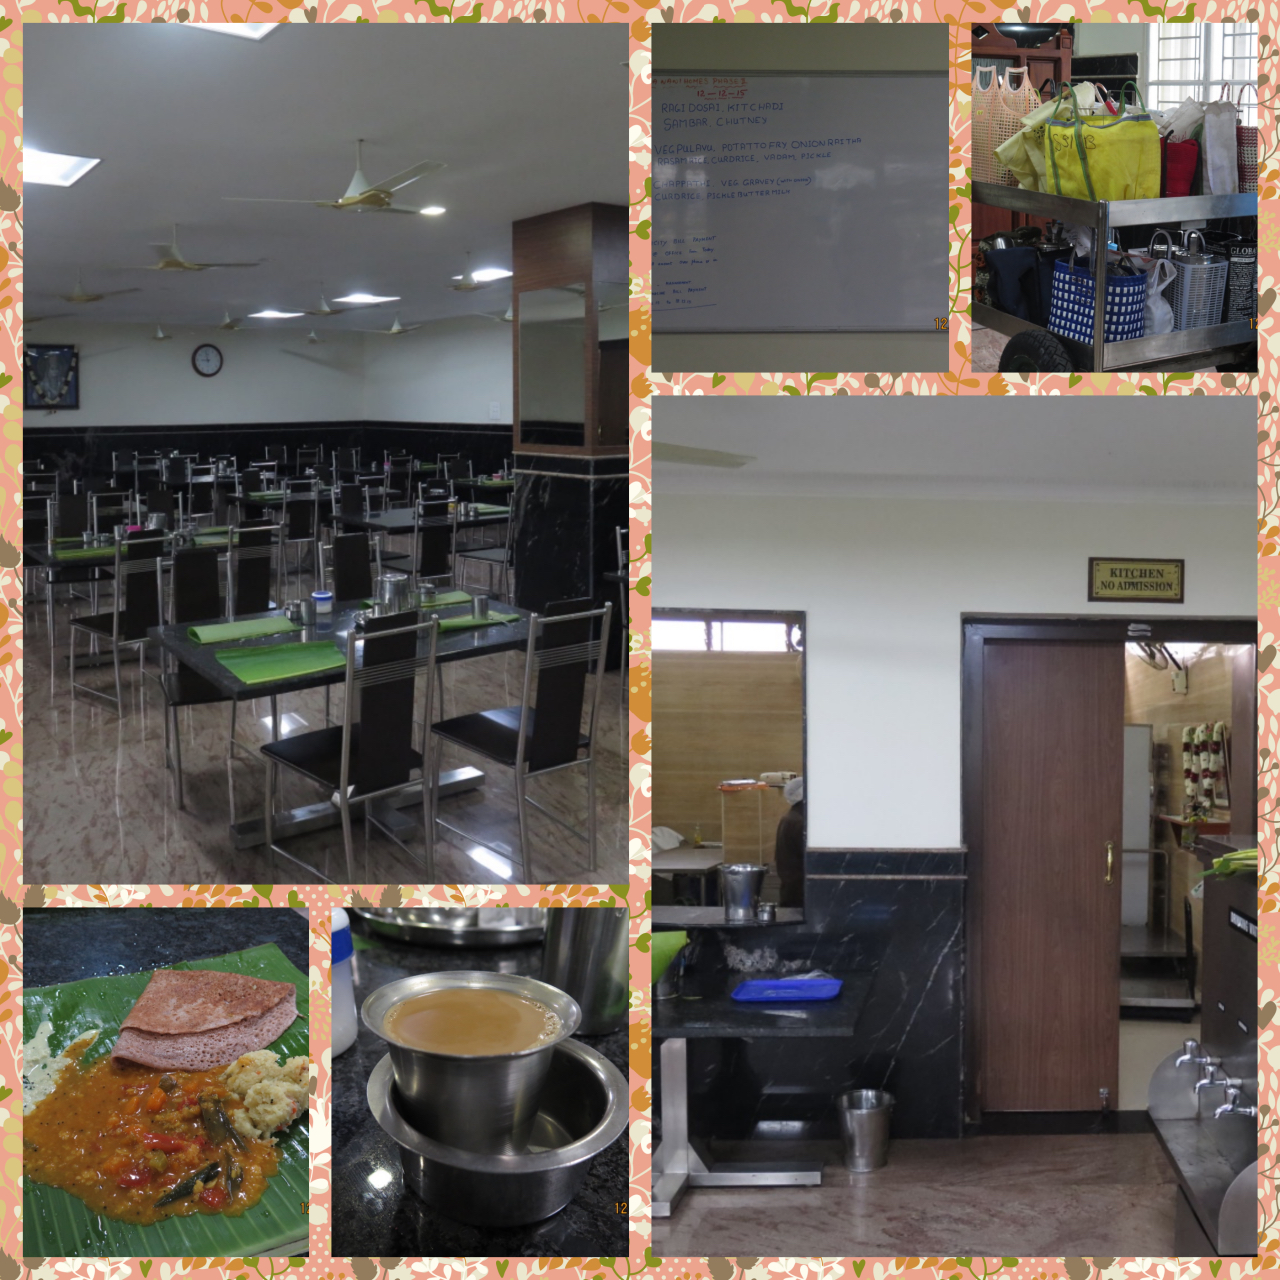 The Dining Hall, Kitchen, Breakfast on Banana Leaves, Hot Coffee and Door service cart